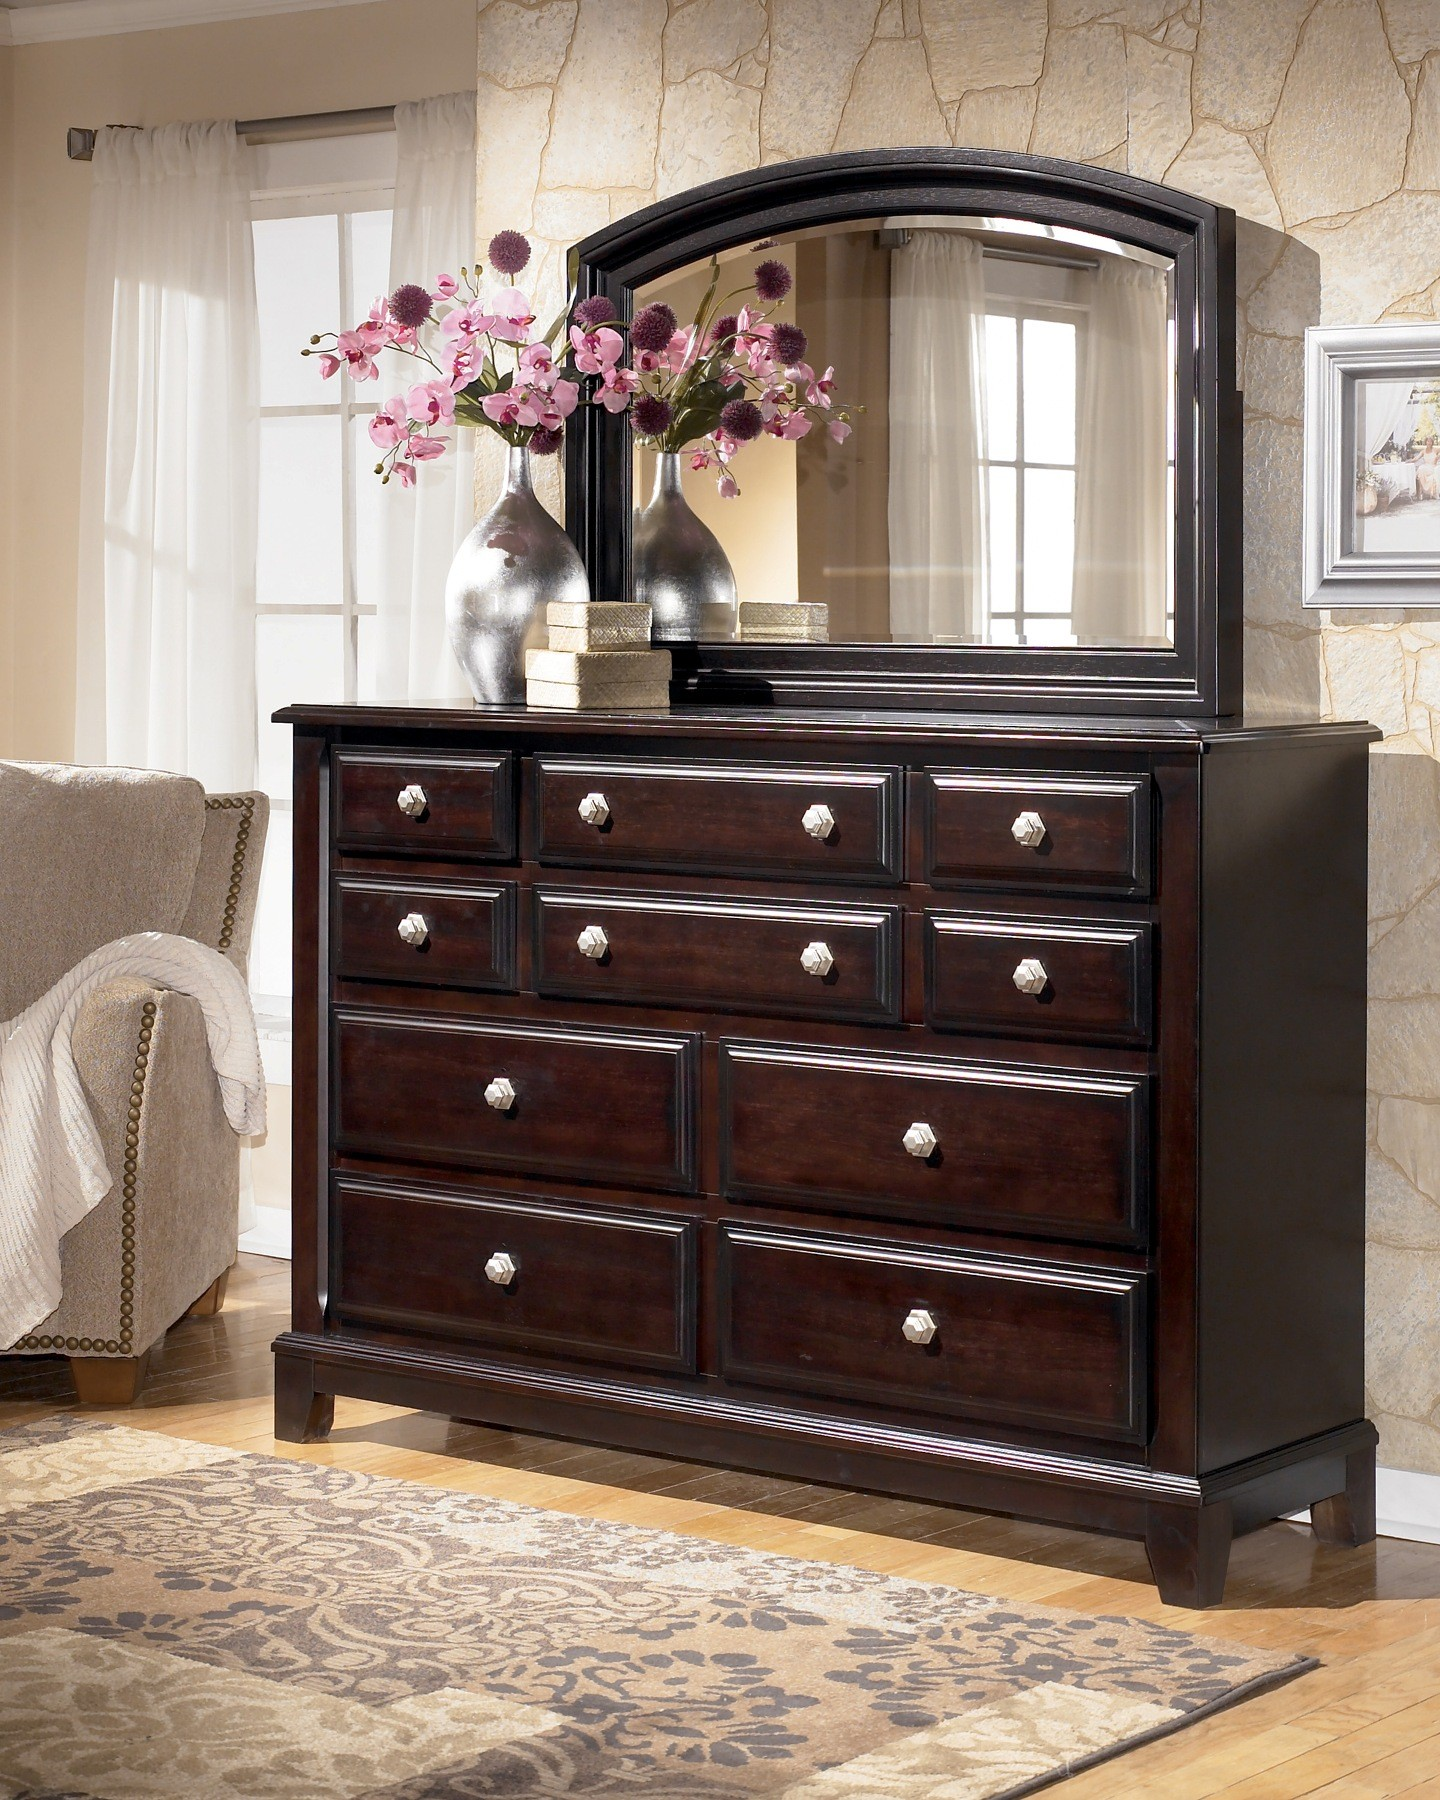 Ashley Furniture Bedroom Furniture: Ridgley Sleigh Bedroom Set From Ashley (B520)